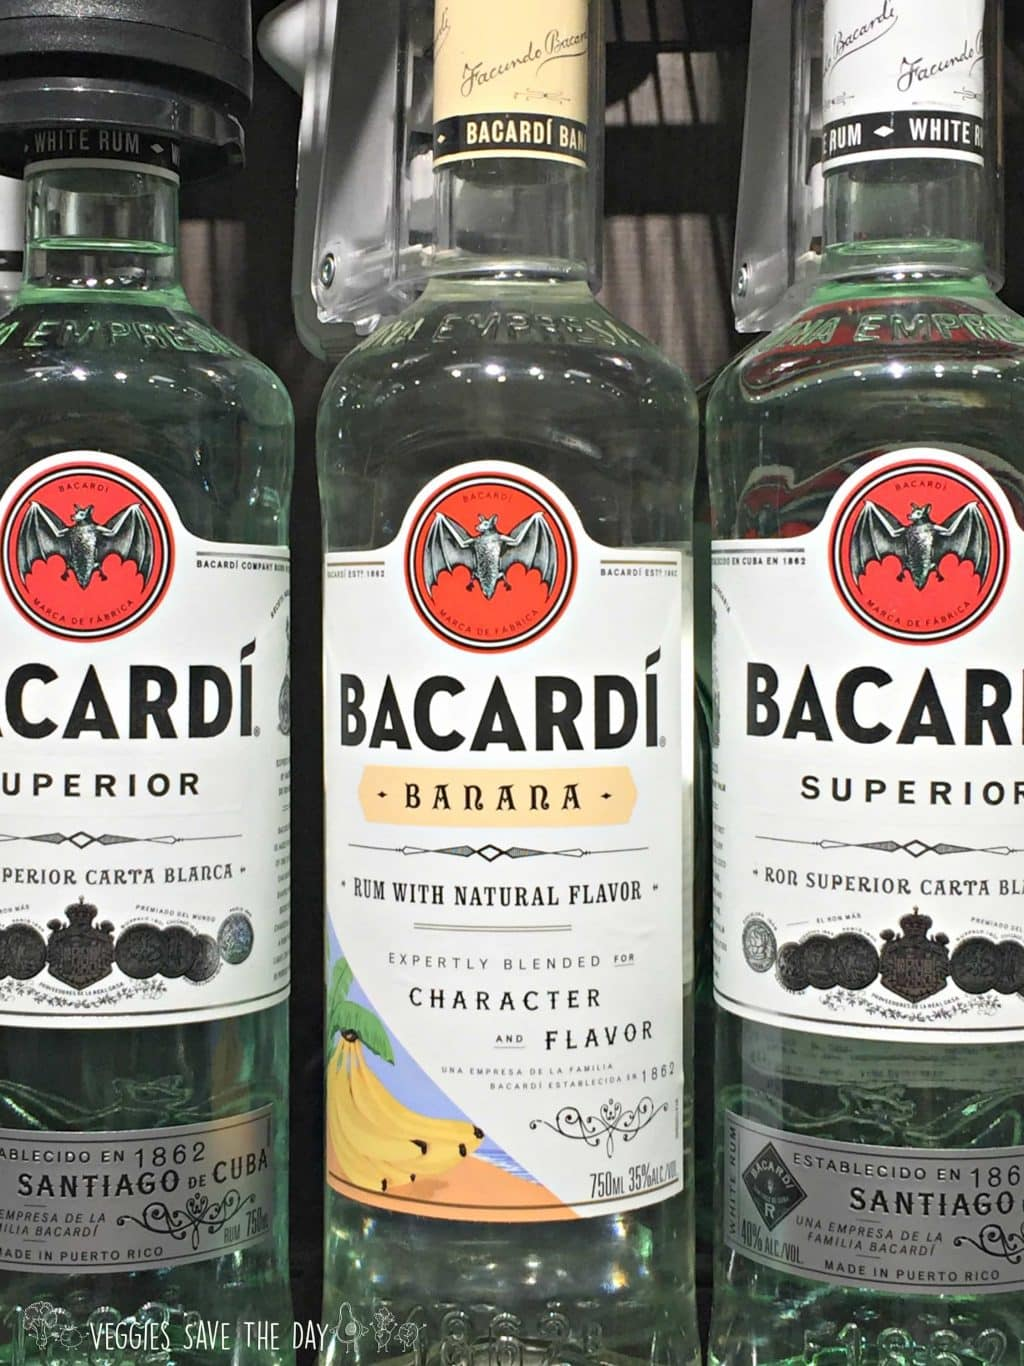 Bottles of Bacardi Superior and Bacardi Banana rum